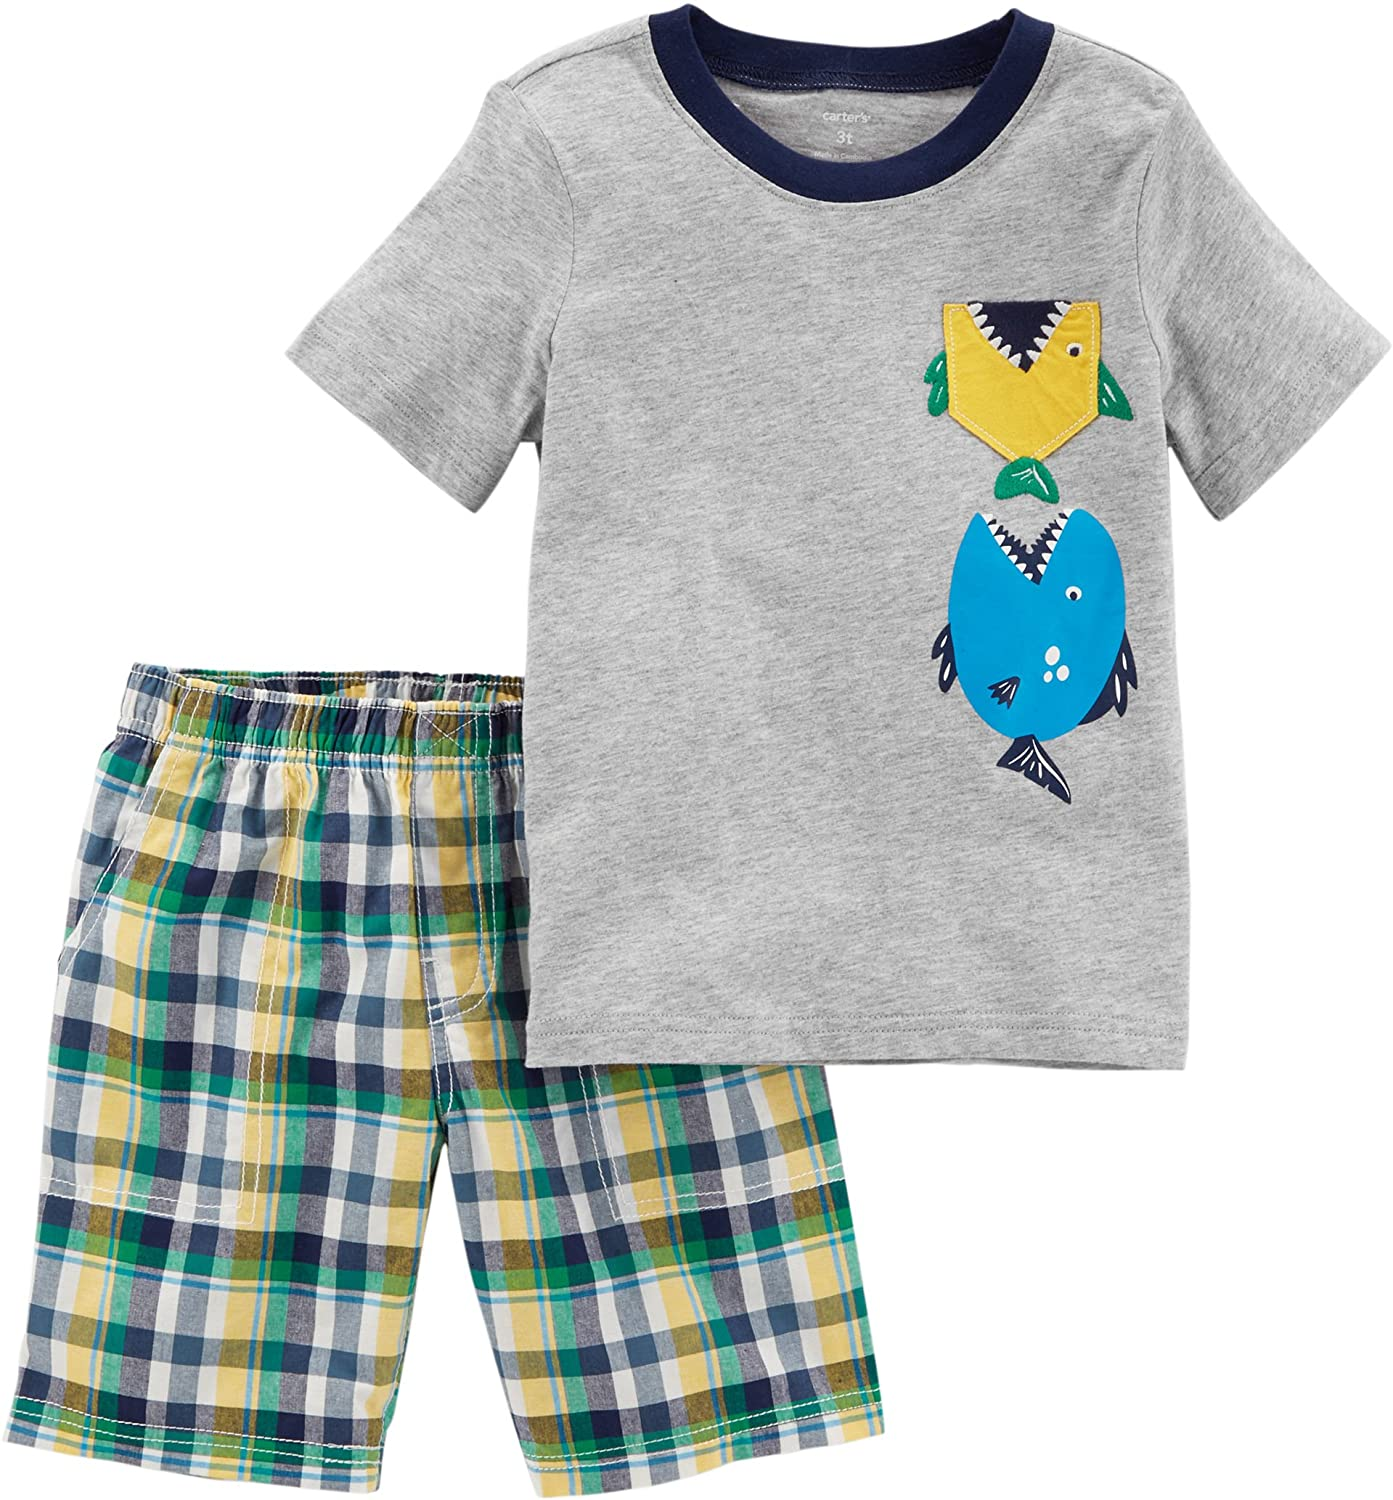 Carter's Boys' 2T-5T 2-Pc. Best Friends Tee and Shorts Set Carter's P000504358